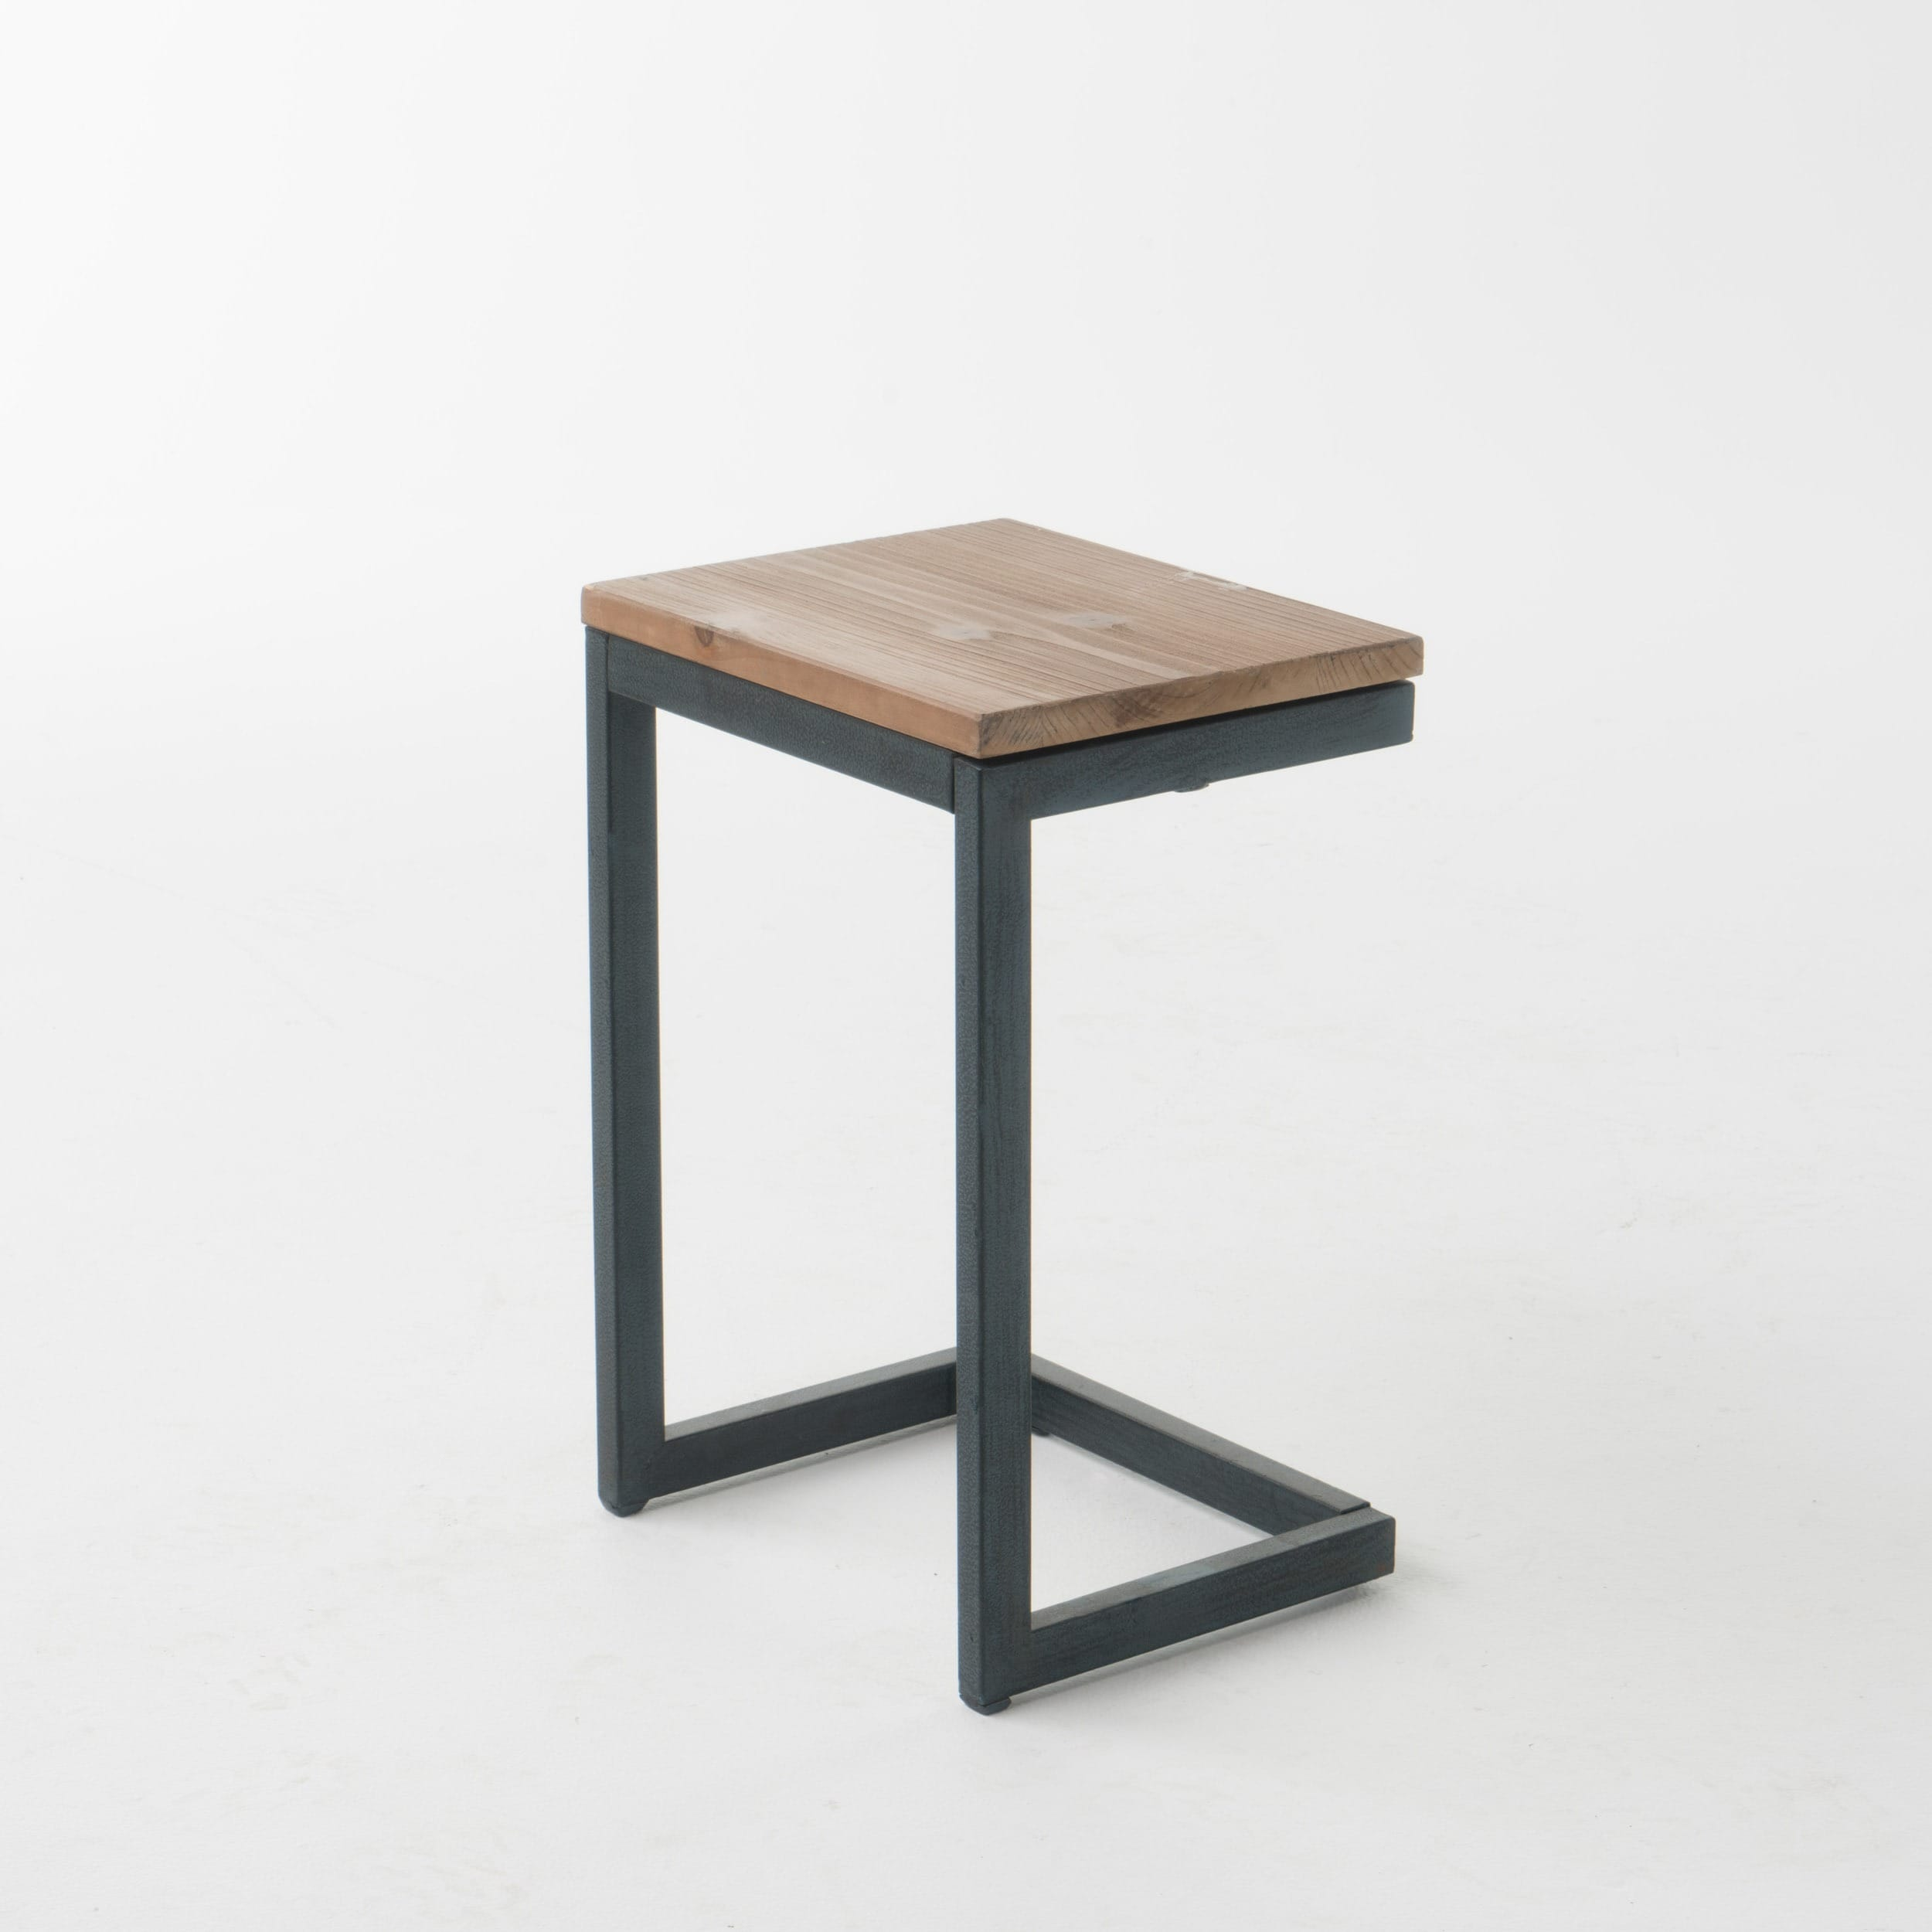 Shop Caspian Outdoor Wood C Shaped Side Table By Christopher Knight Home    Free Shipping On Orders Over $45   Overstock.com   19459885